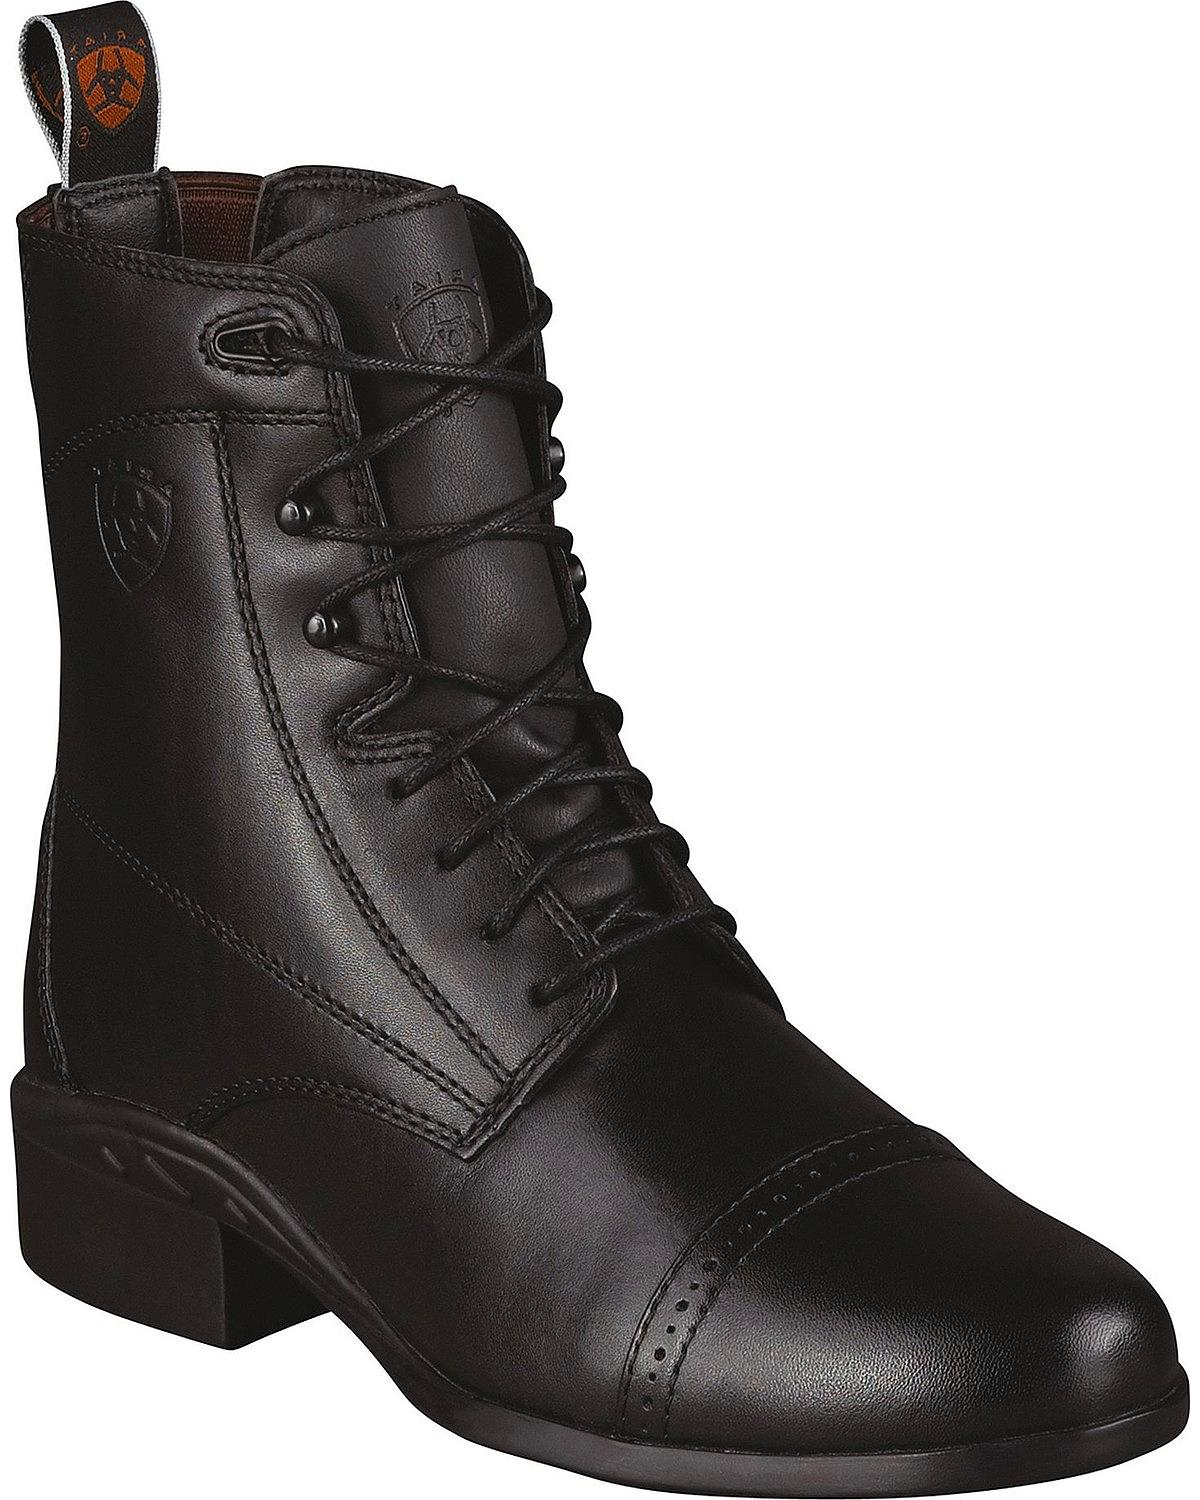 Luxury Stylish And Beautiful Womens Riding Boots - Mybestfashions.com